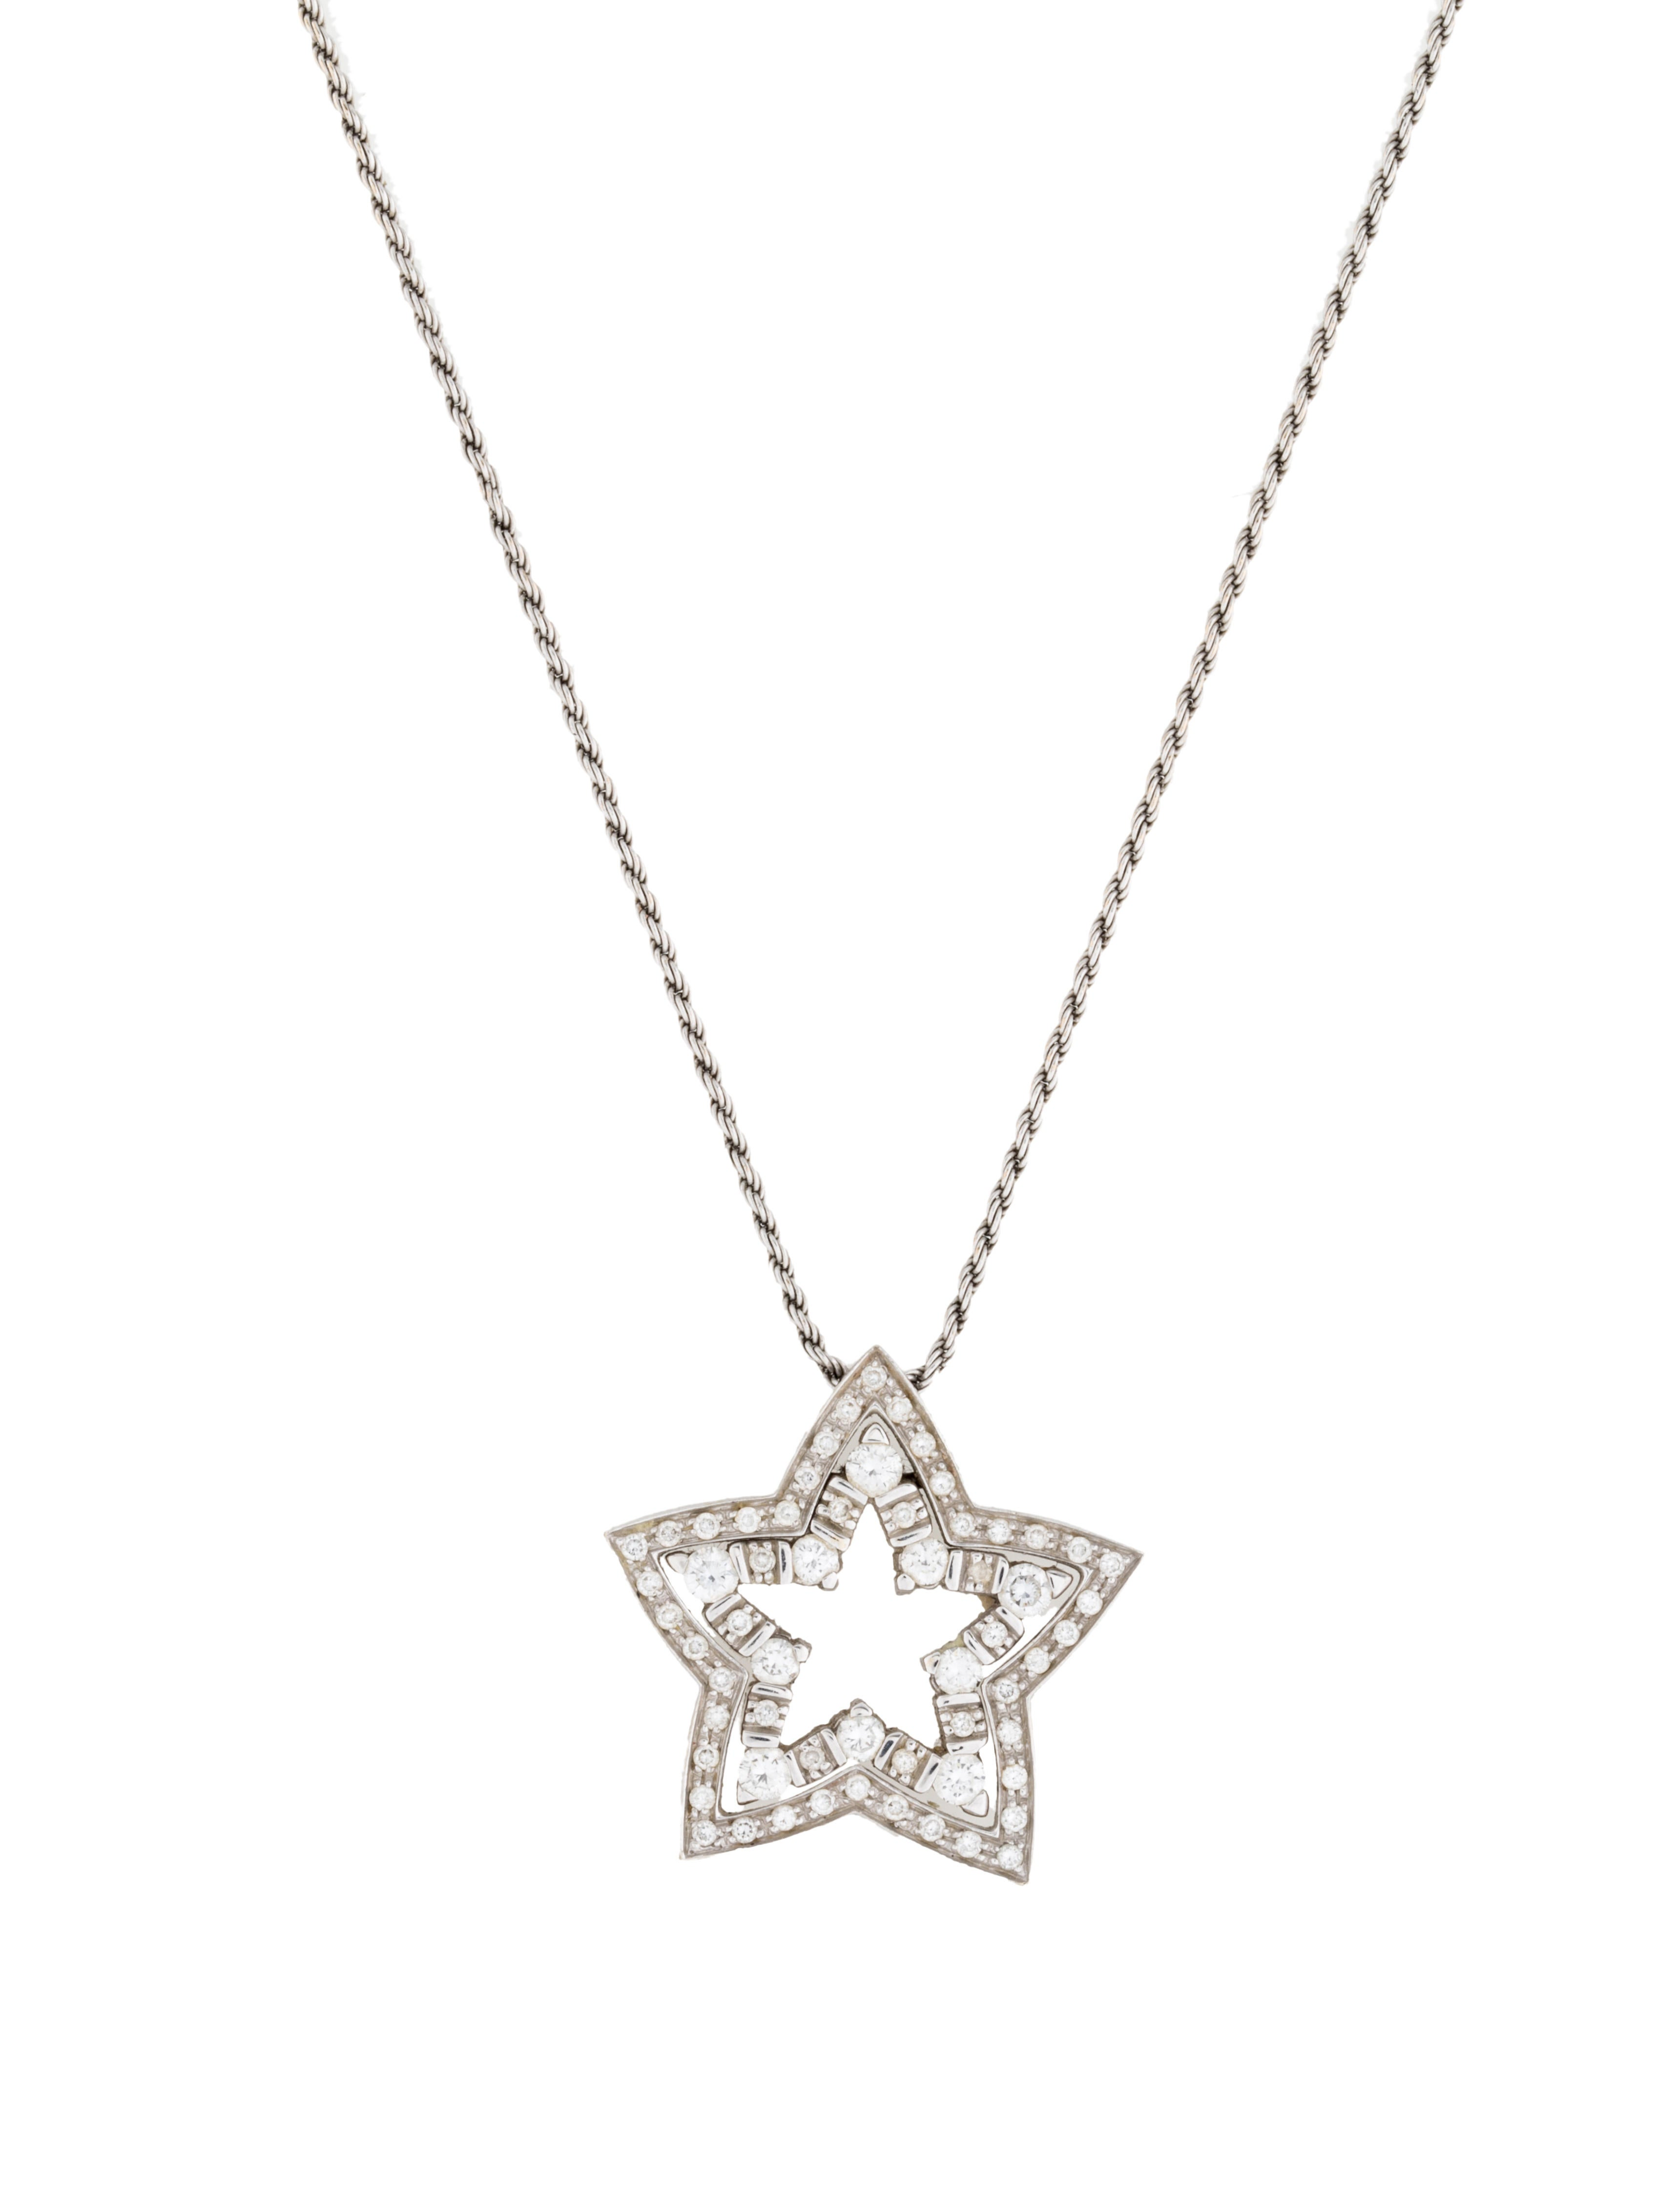 Damiani Belle Epoque Diamond Star Necklace Necklaces DIA